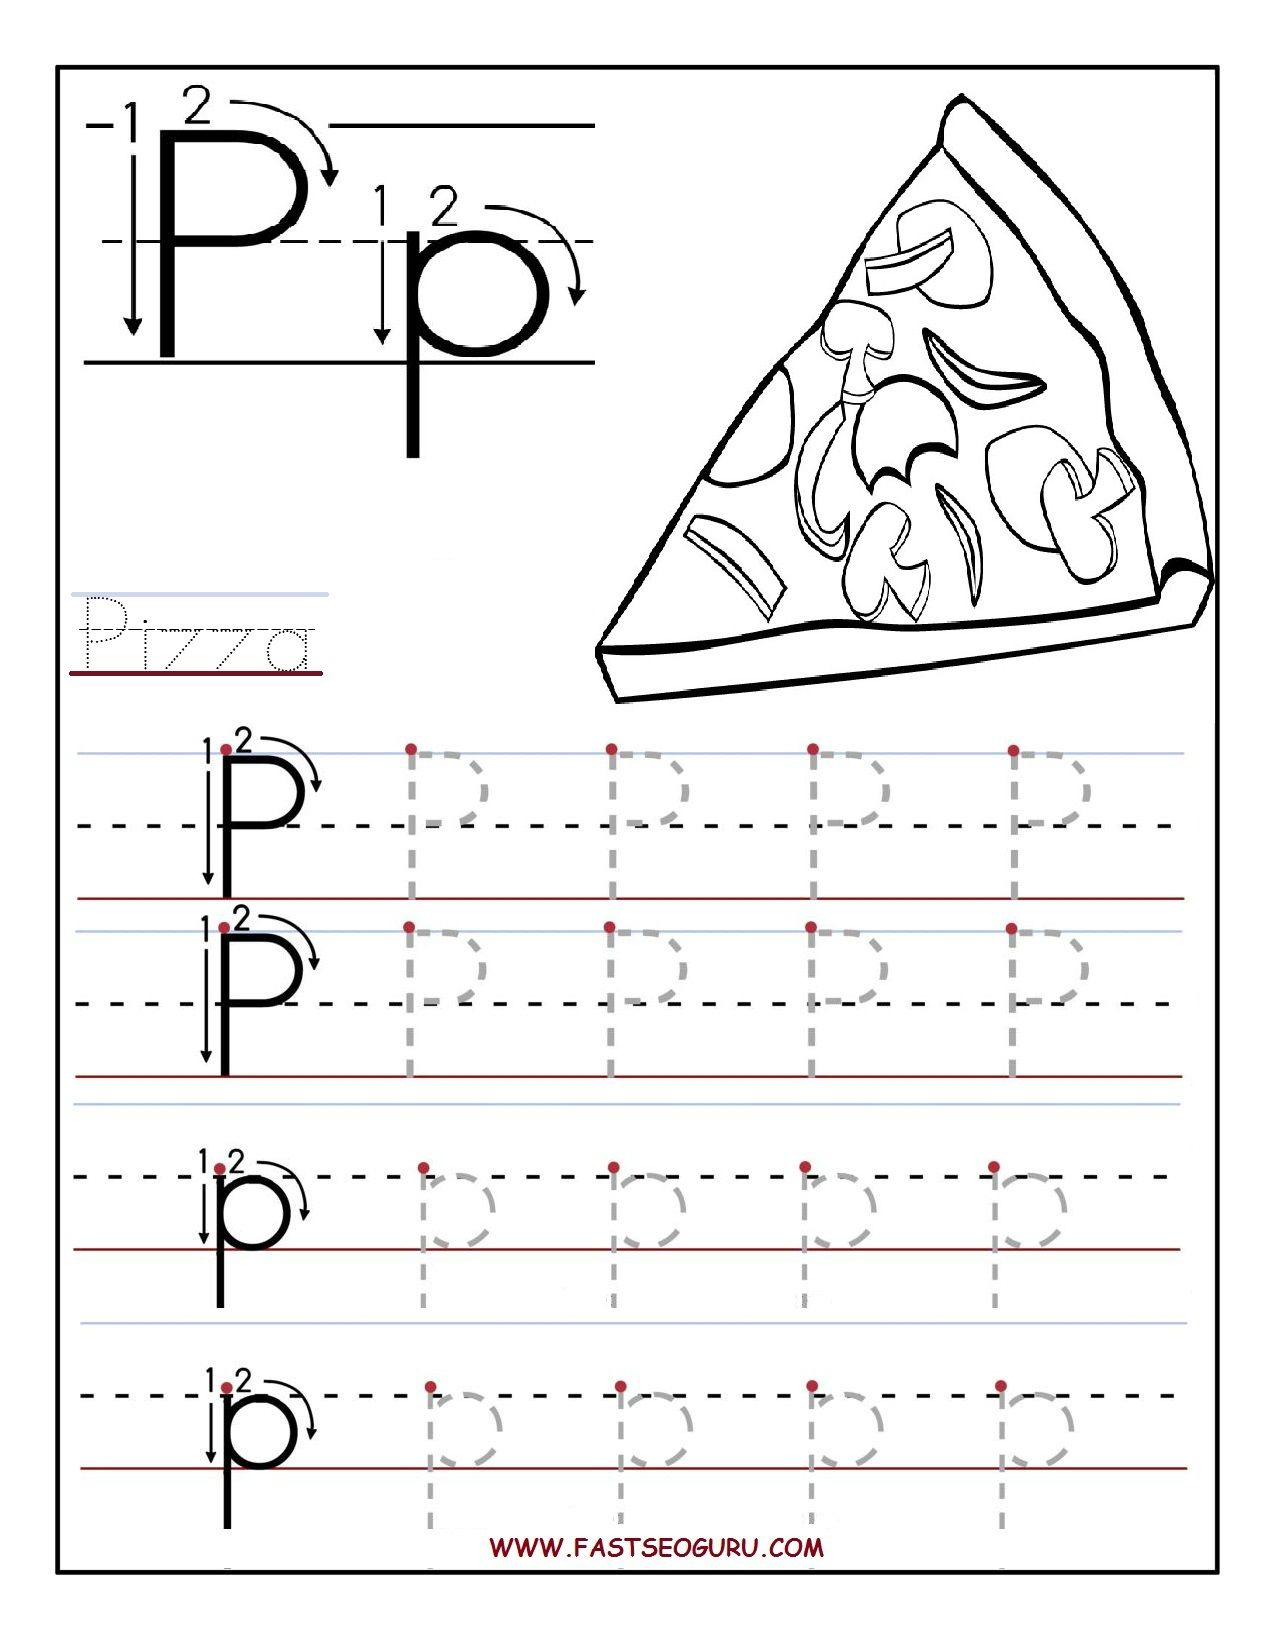 Printable Letter P Tracing Worksheets For Preschool pertaining to Alphabet Worksheets P